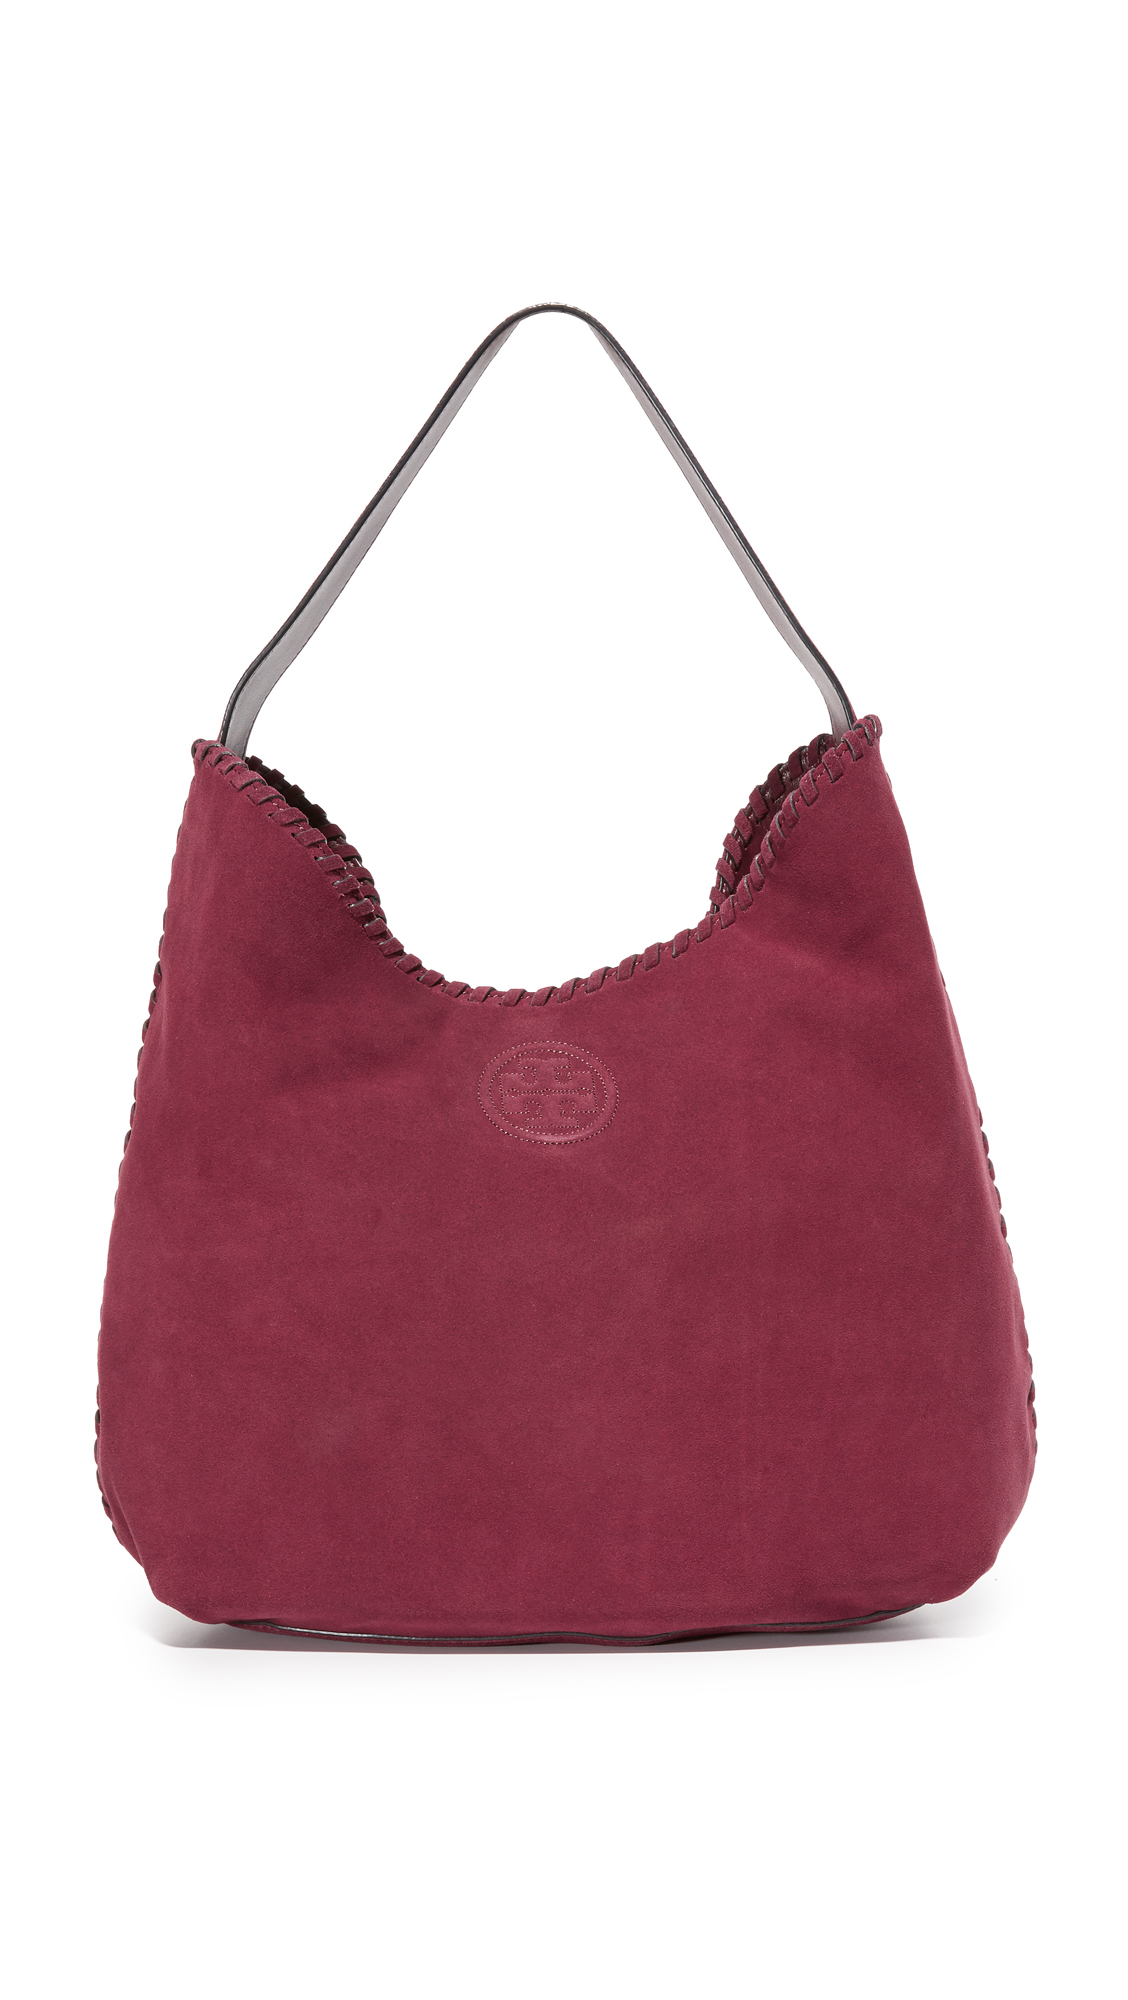 274b0697003e Gallery. Previously sold at  Shopbop · Women s Tory Burch Marion ...